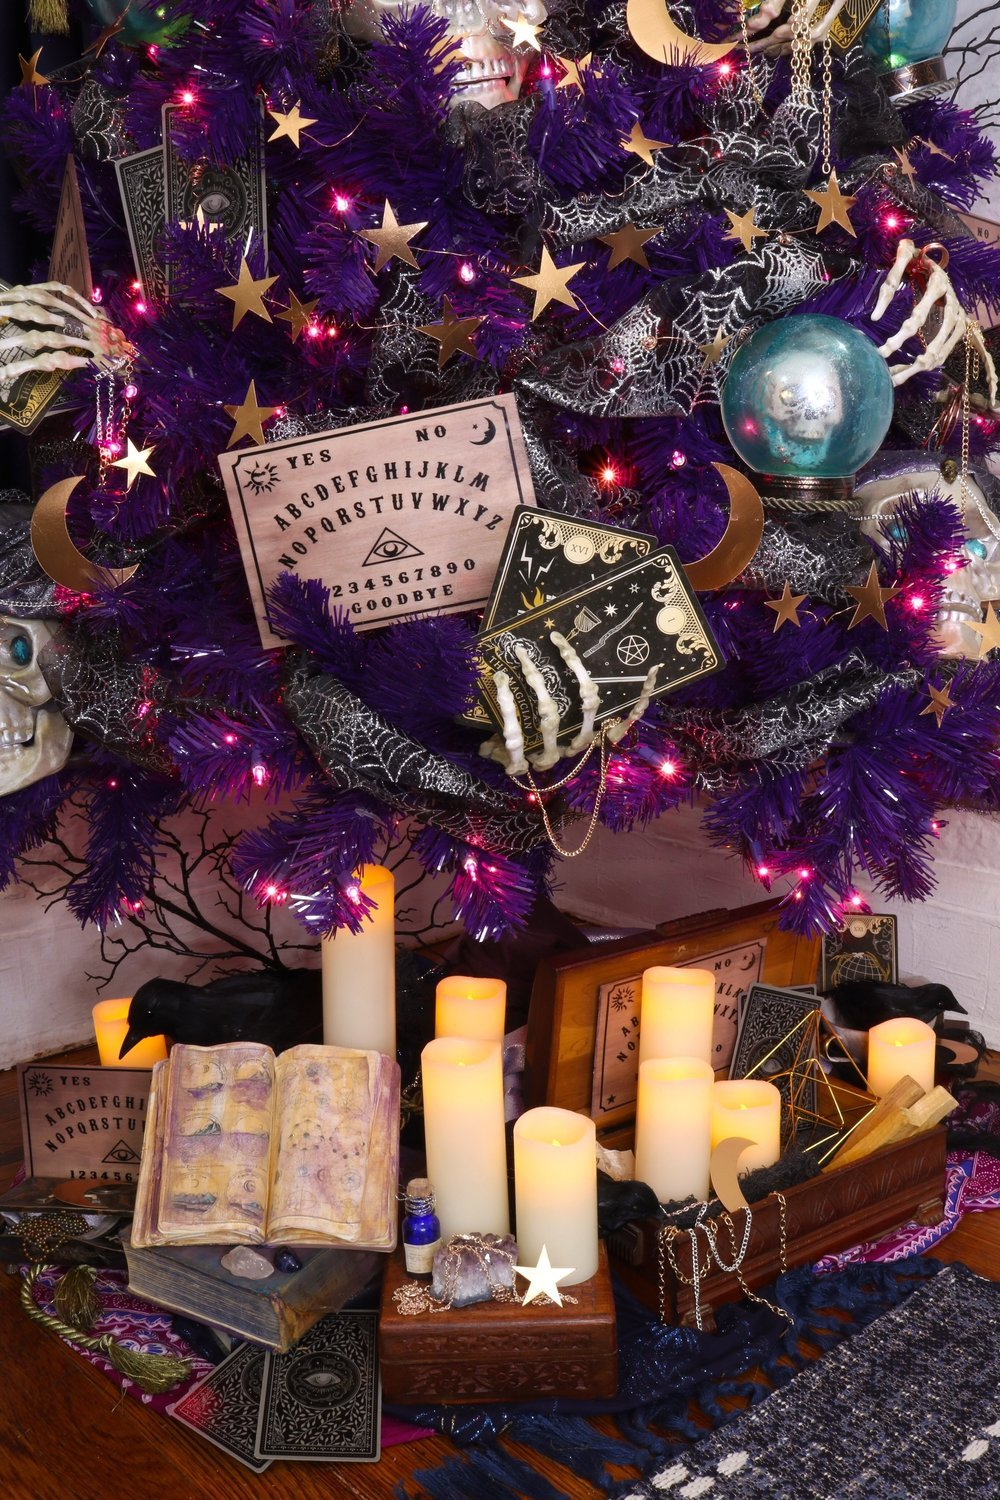 Psychic Fortune Teller Halloween Tree Diy and Treetopia Giveaway! #Halloween #Halloweendecor #halloweendiy #hauntedhouse #halloweentree #halloweenornamnets #psychic #fortuneteller #mystical #treetopia #halloweengiveaway #halloweenchristmastree #notsospookyhalloween #skeleton #fortune #vintagehalloween #purpletree